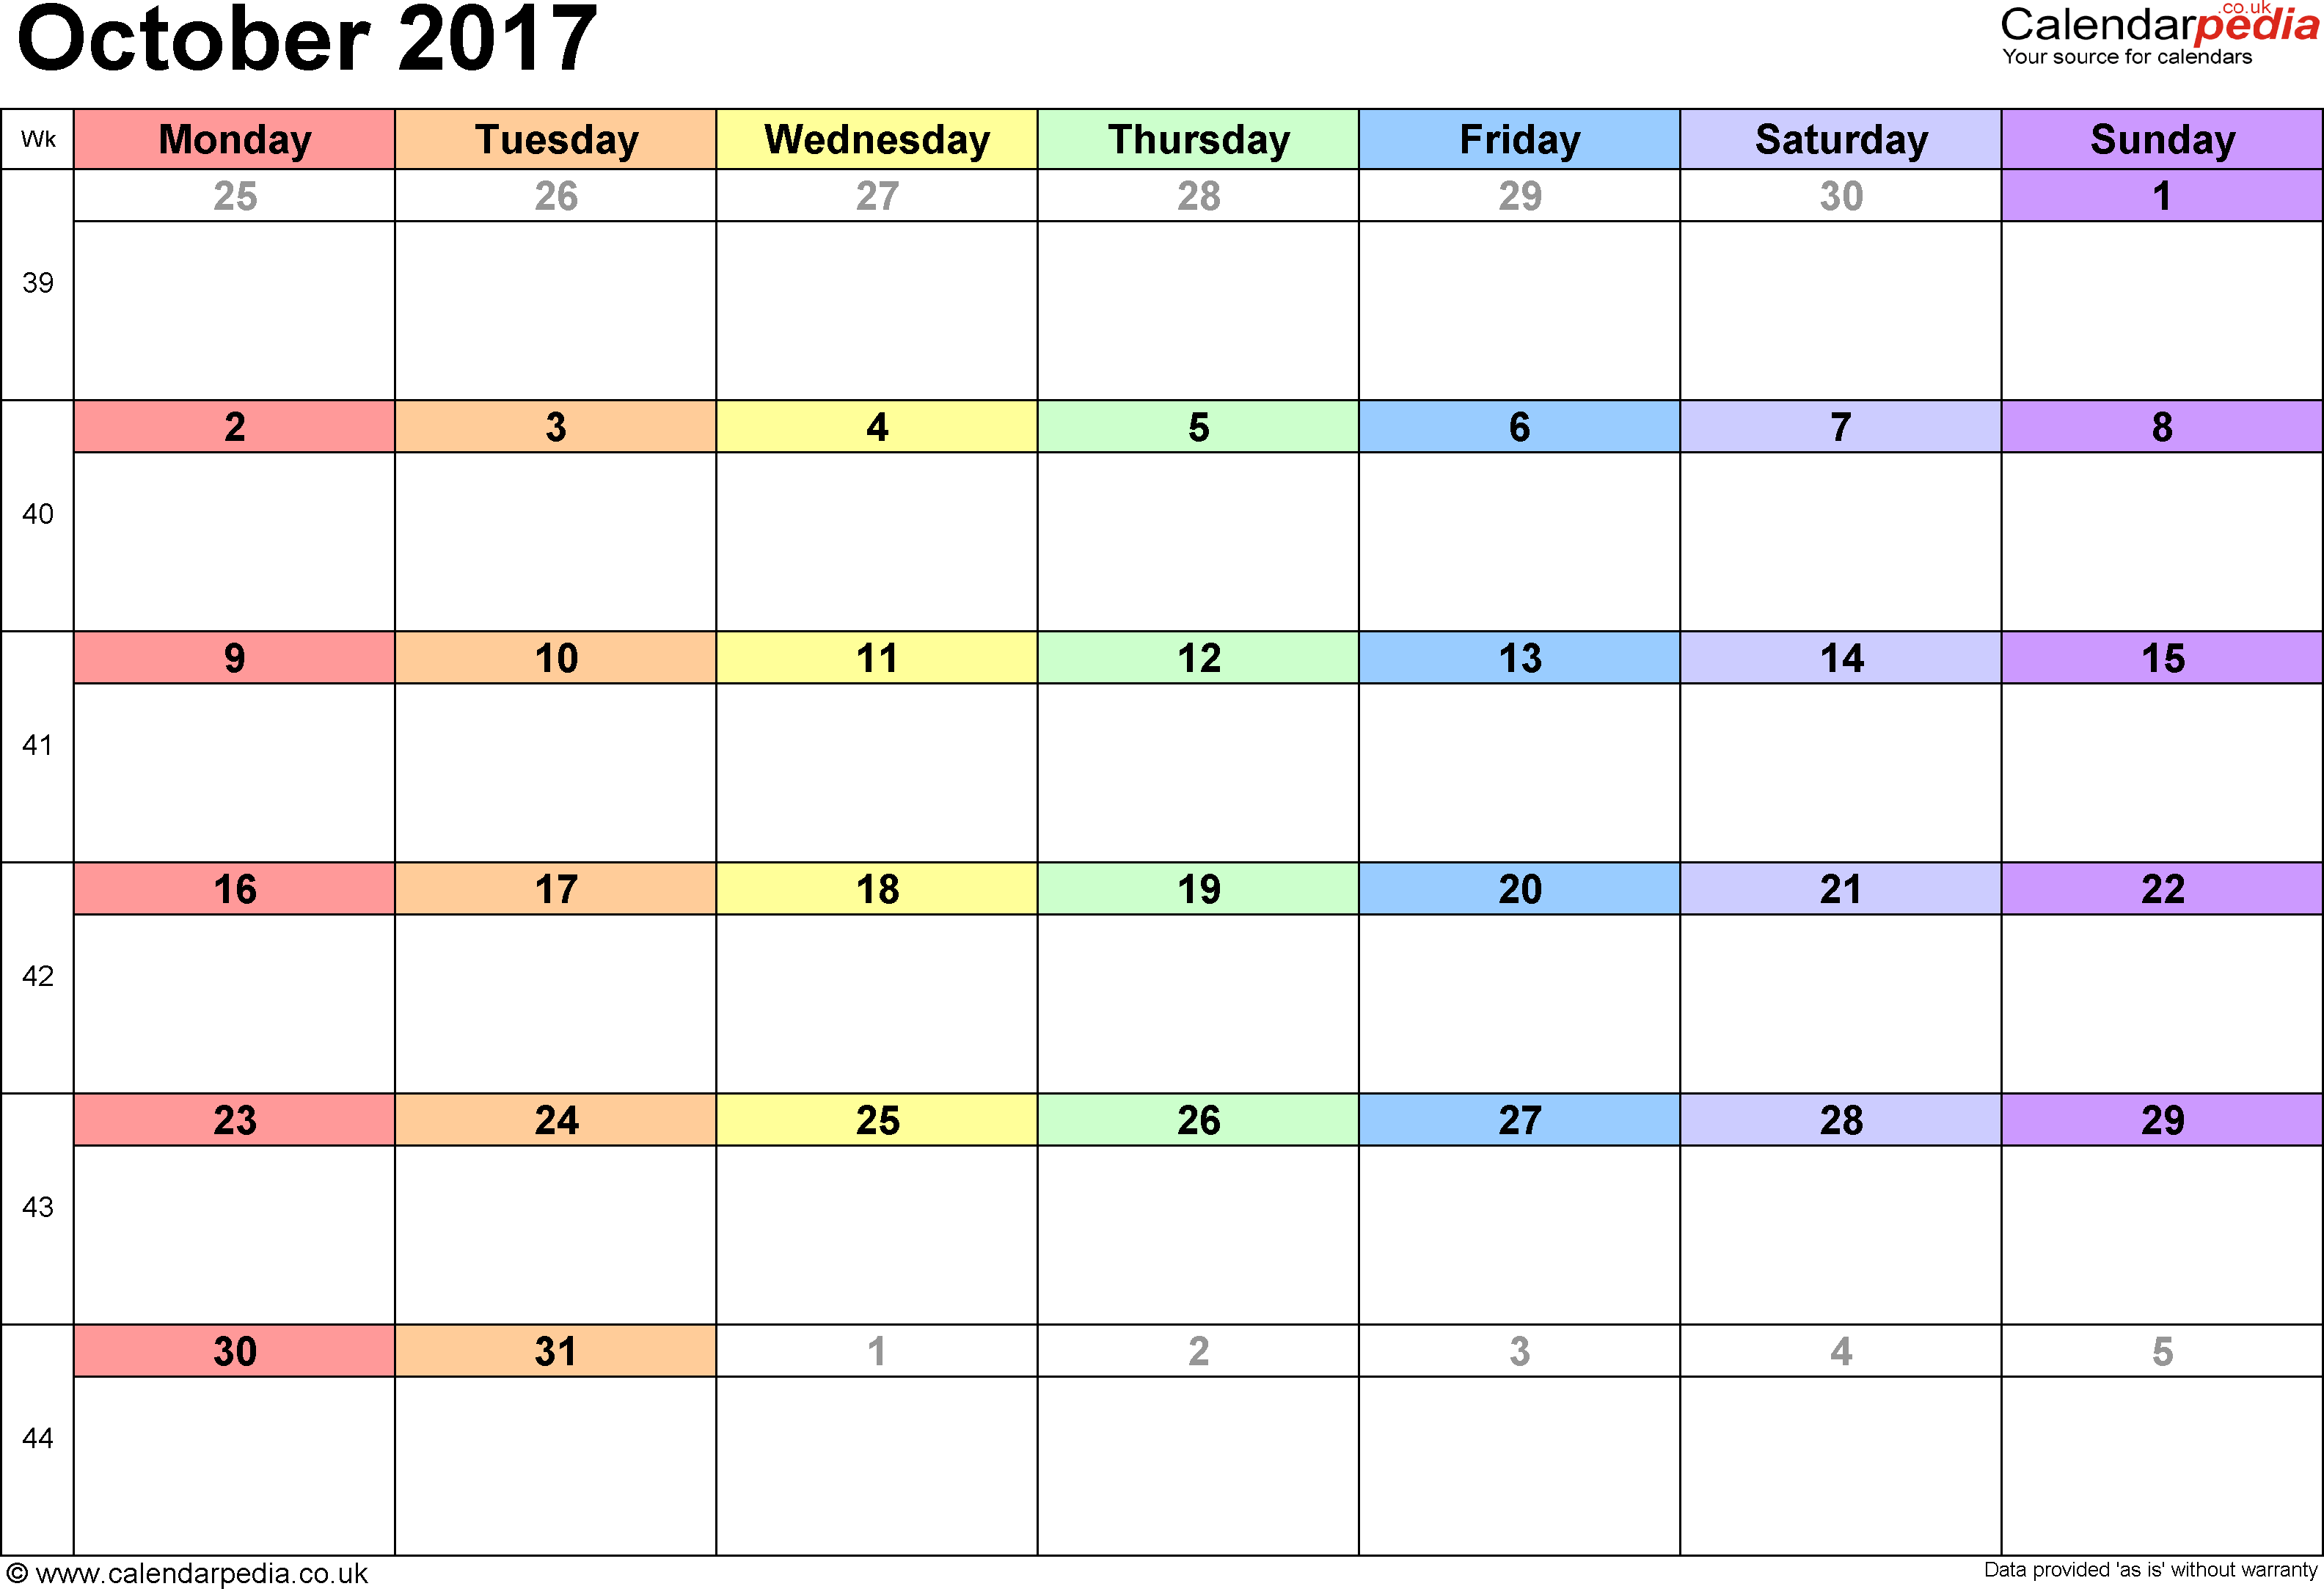 October Calendar 2017 With Holidays